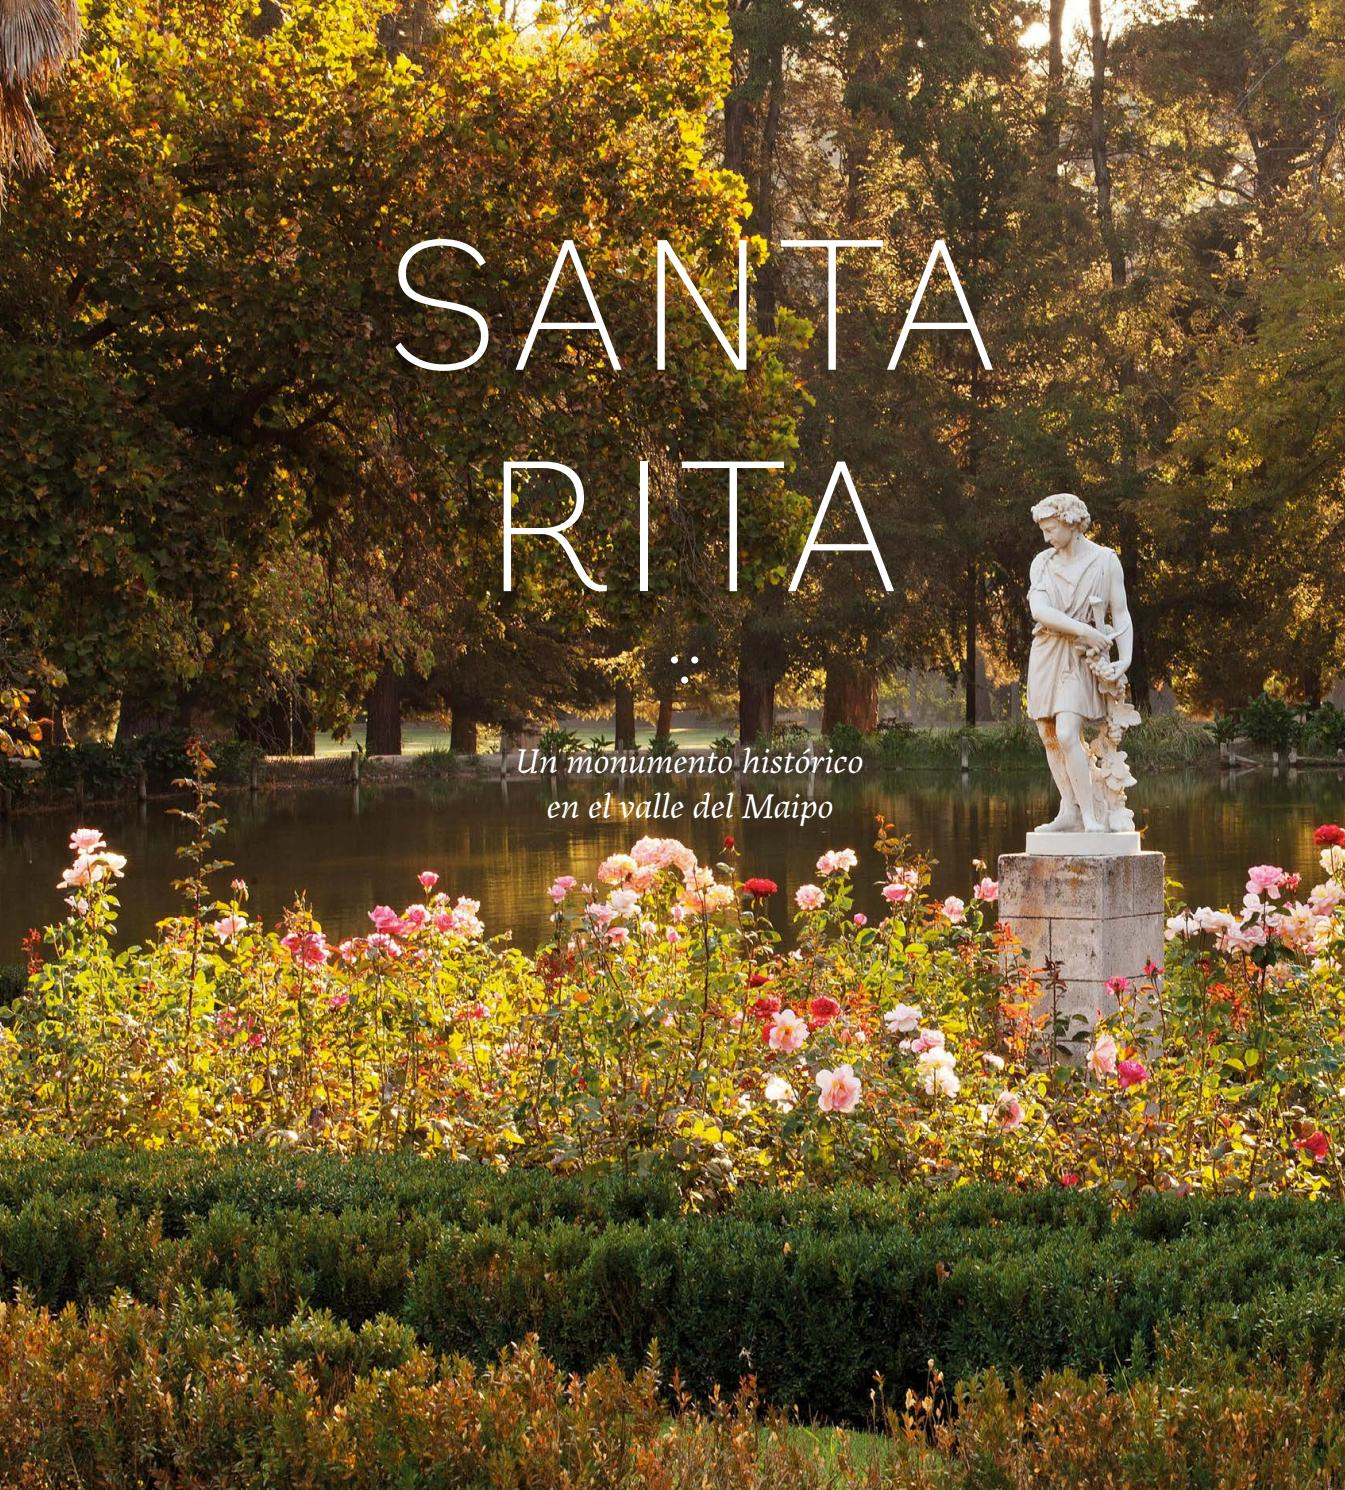 santa rita single guys Formerly known as santa rita medalla real special reserva single estate carmenere users have rated this wine 4 out of 5 stars maipo valley is one of chile's most important wine-producing.